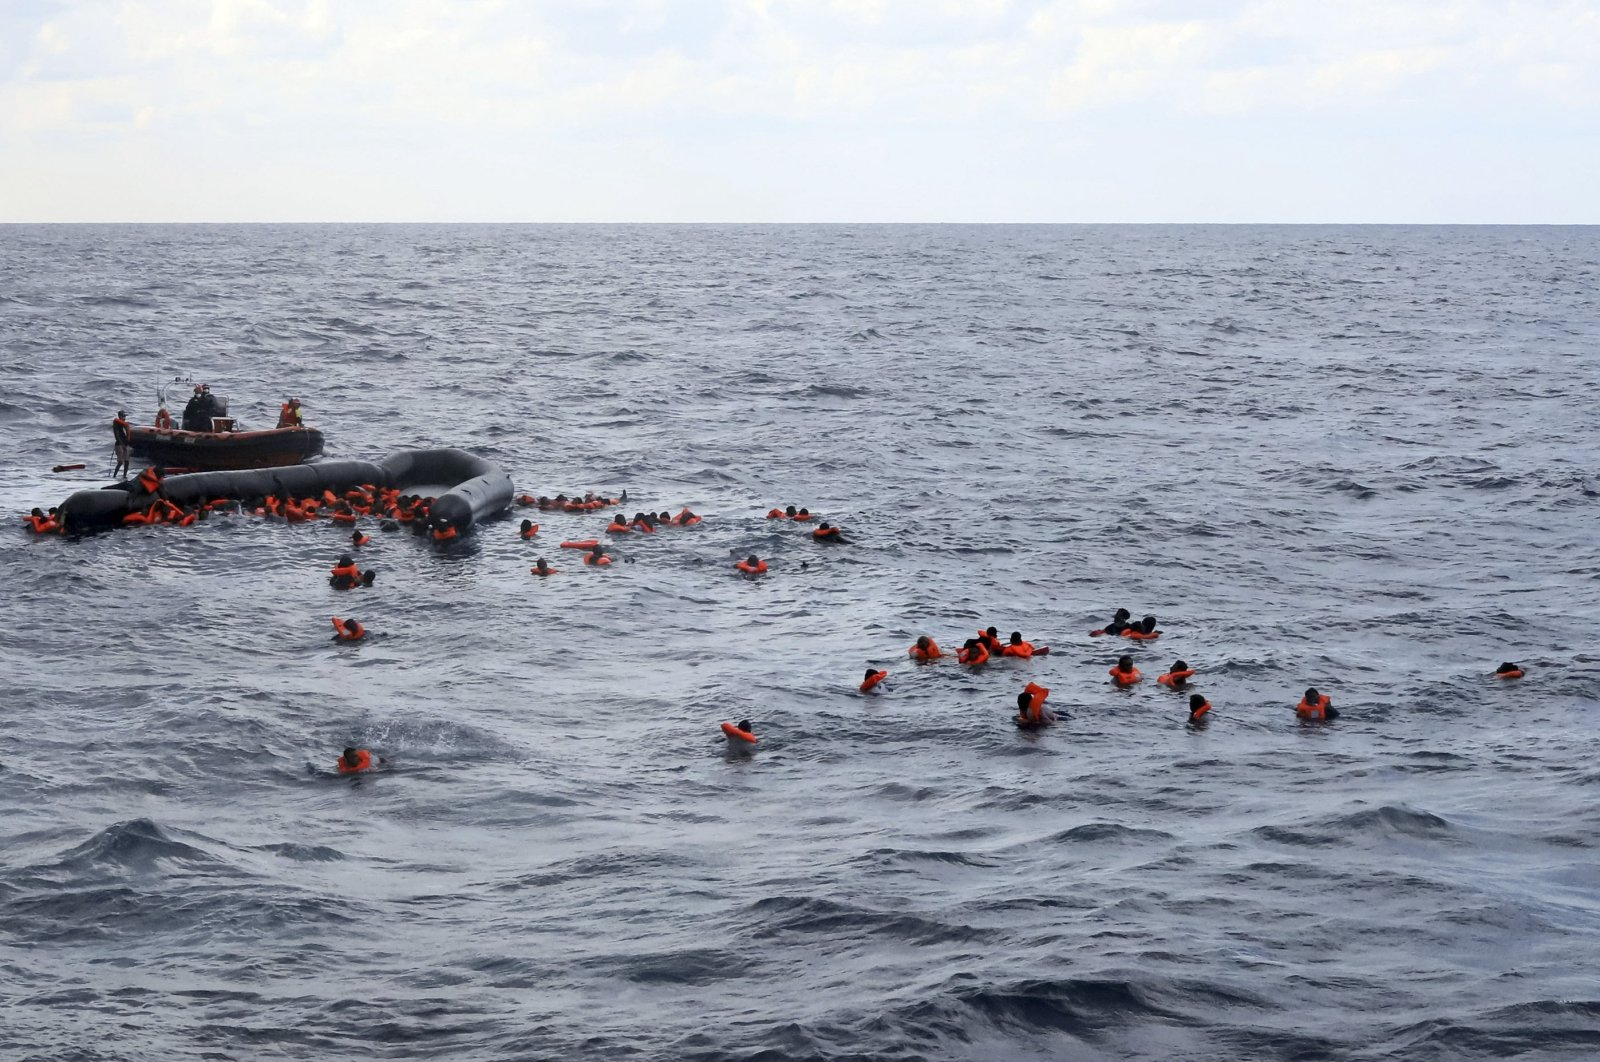 Refugees and migrants are rescued by members of a Spanish NGO, off the coast of Libya, Nov. 11, 2020. (AP PHOTO)